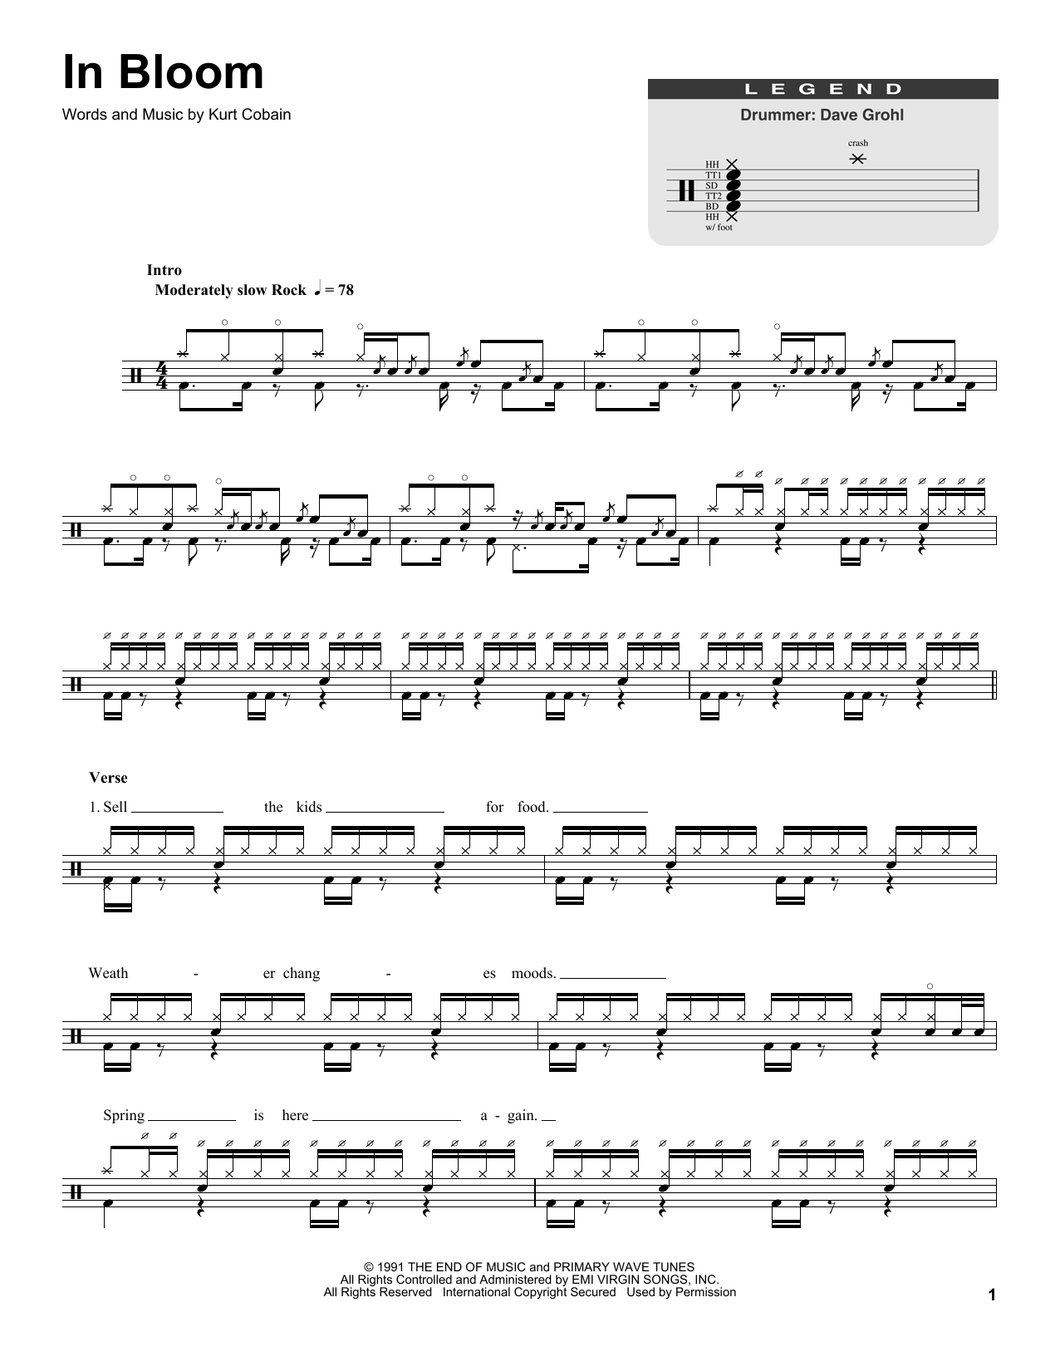 In Bloom - Nirvana - Full Drum Transcription / Drum Sheet Music - SheetMusicDirect DT174843